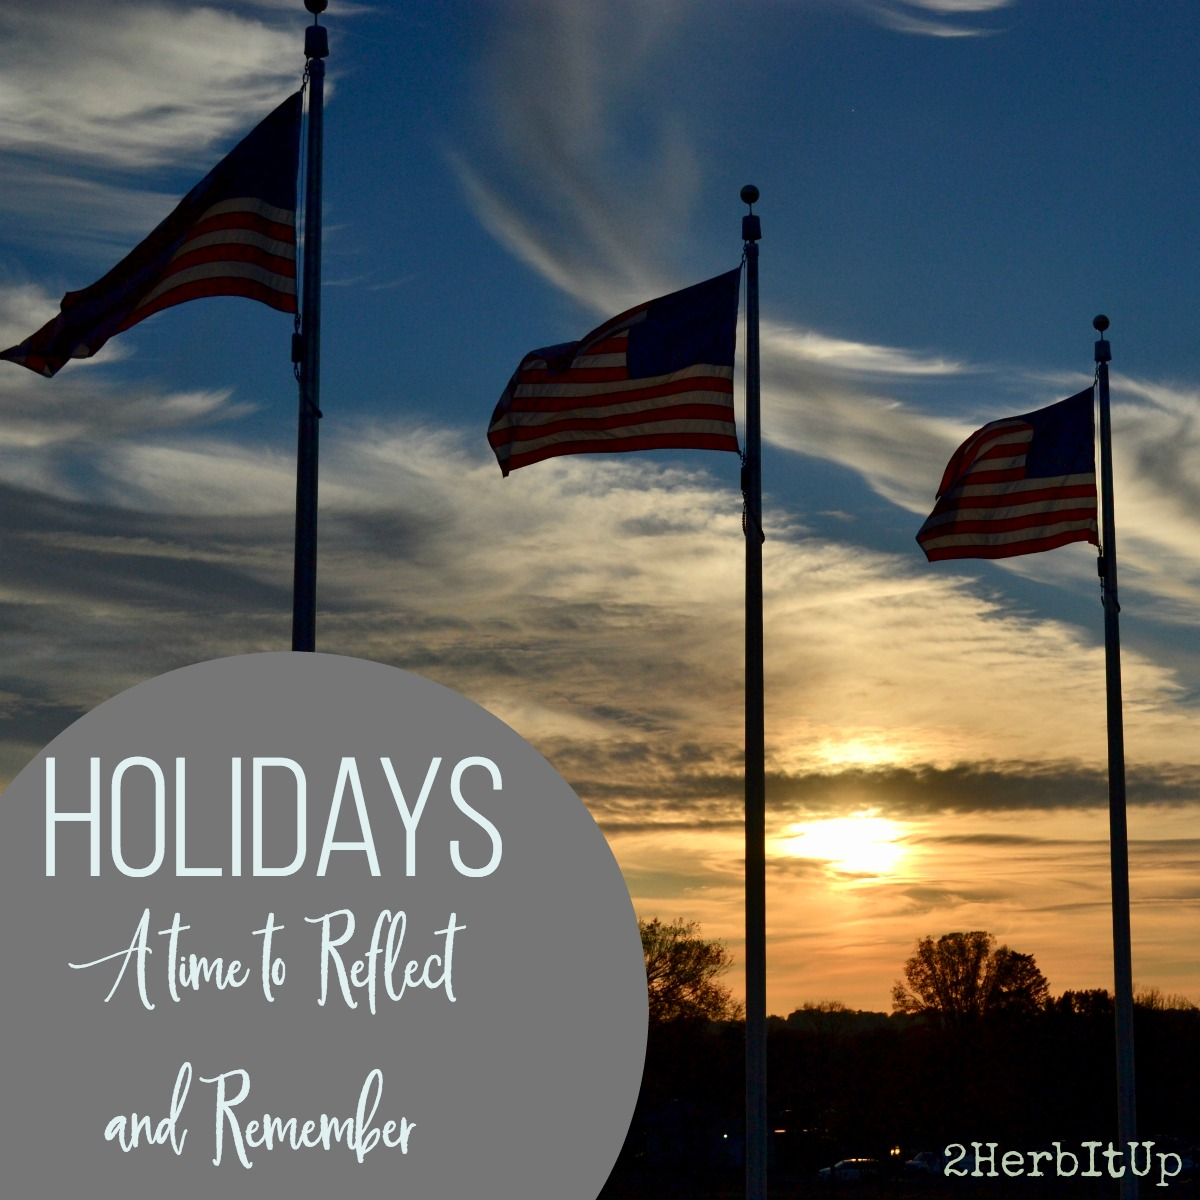 Holidays should be a time to reflect and remember those sacrifices given for us.